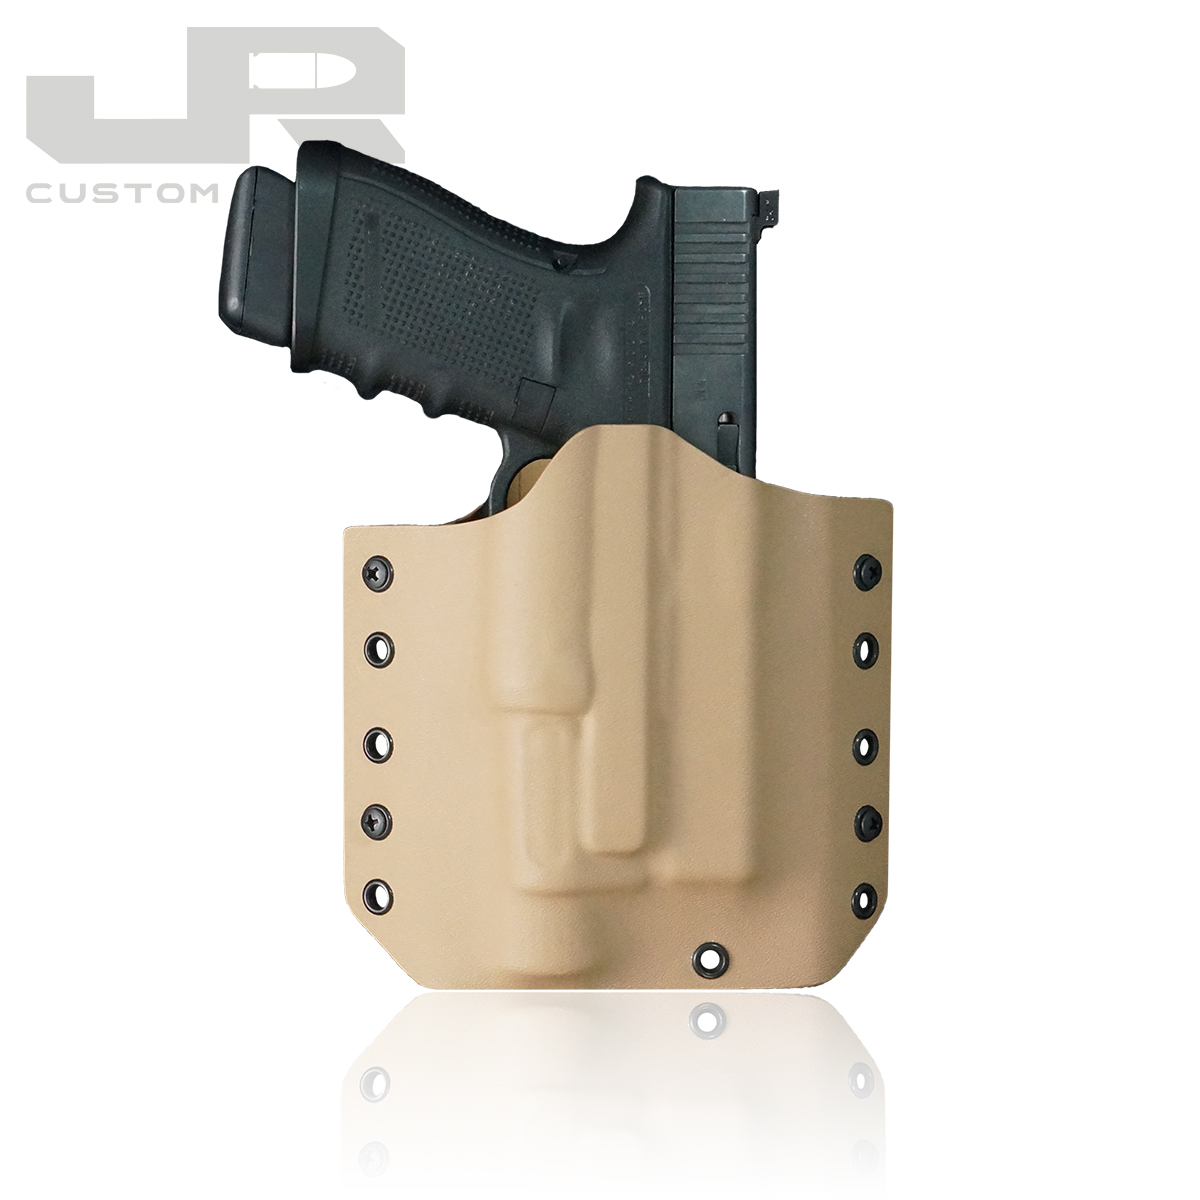 JR Custom Kydex Holster Operator OWB WML